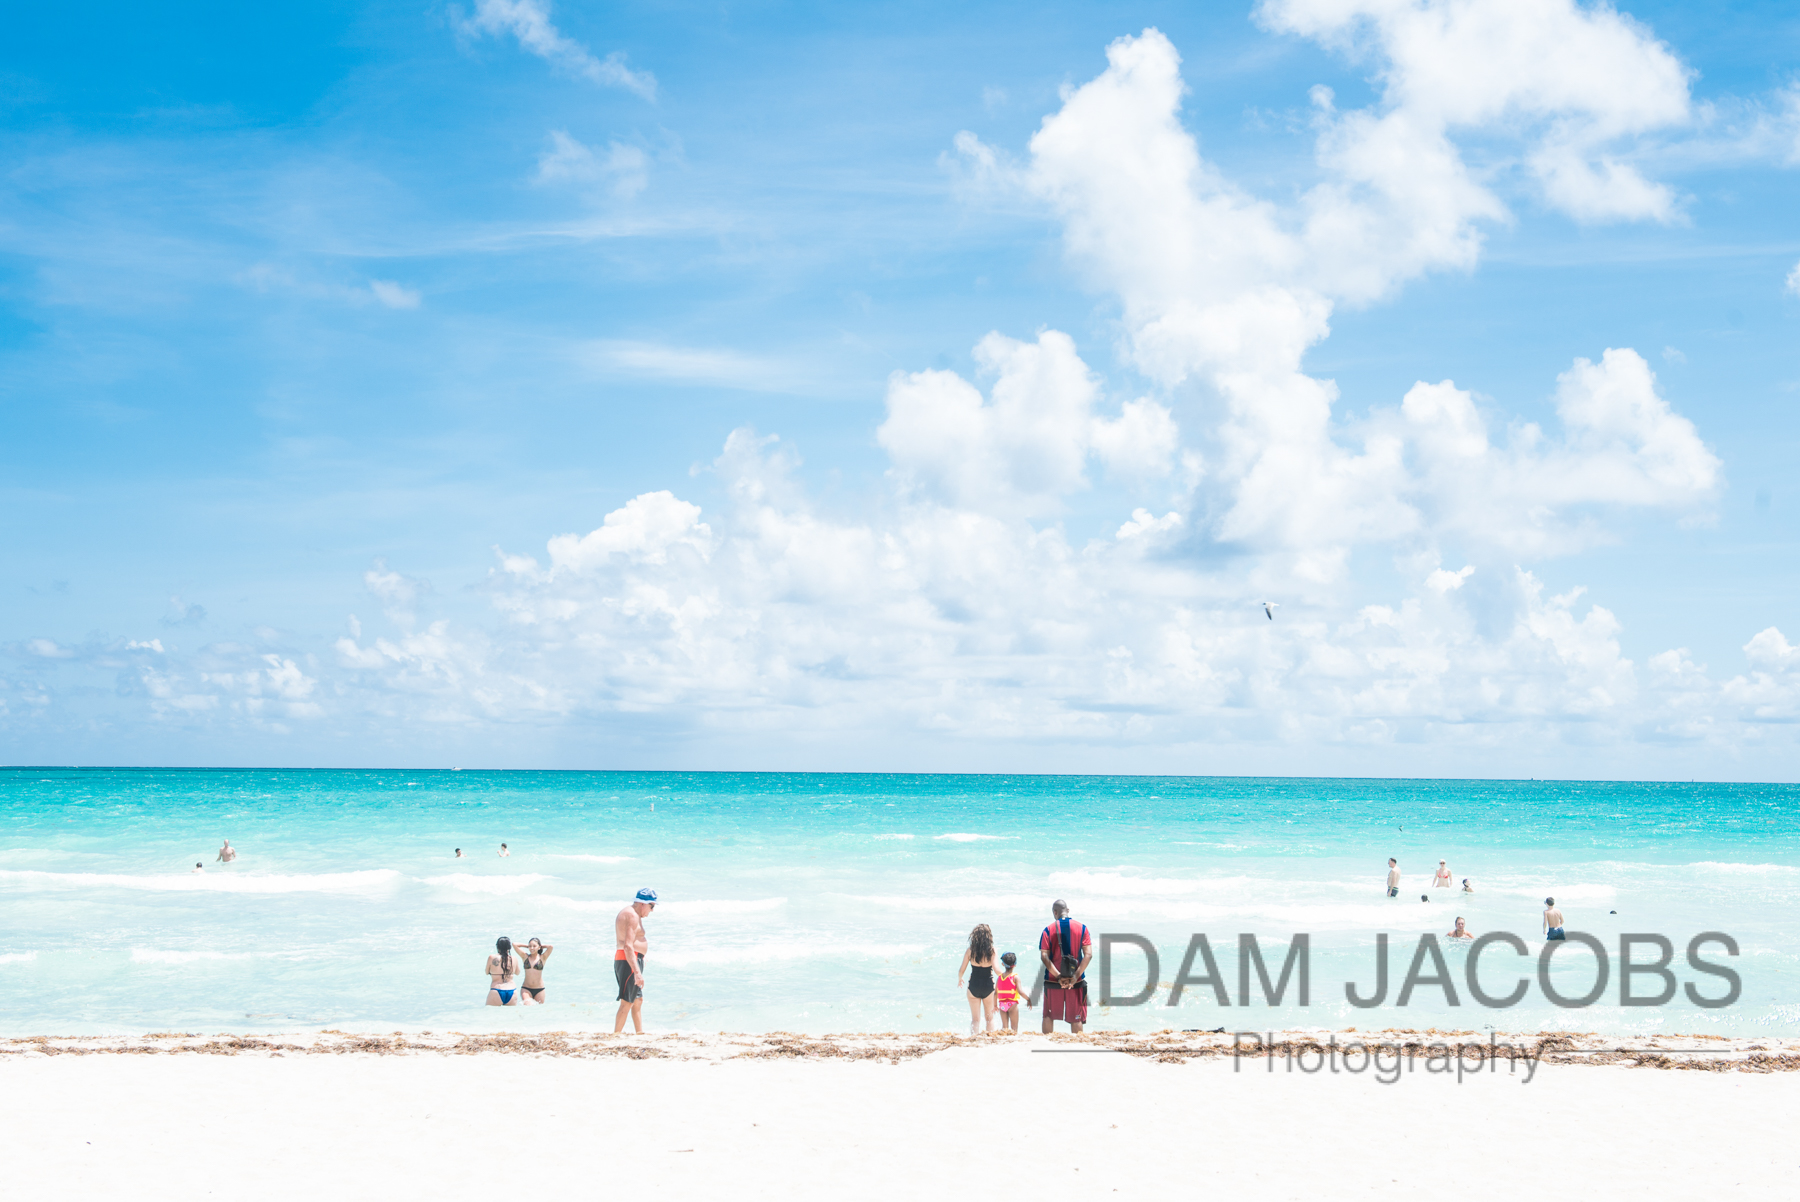 Miami Beach Adam Jacobs Photography Fine Art For Sale Photo